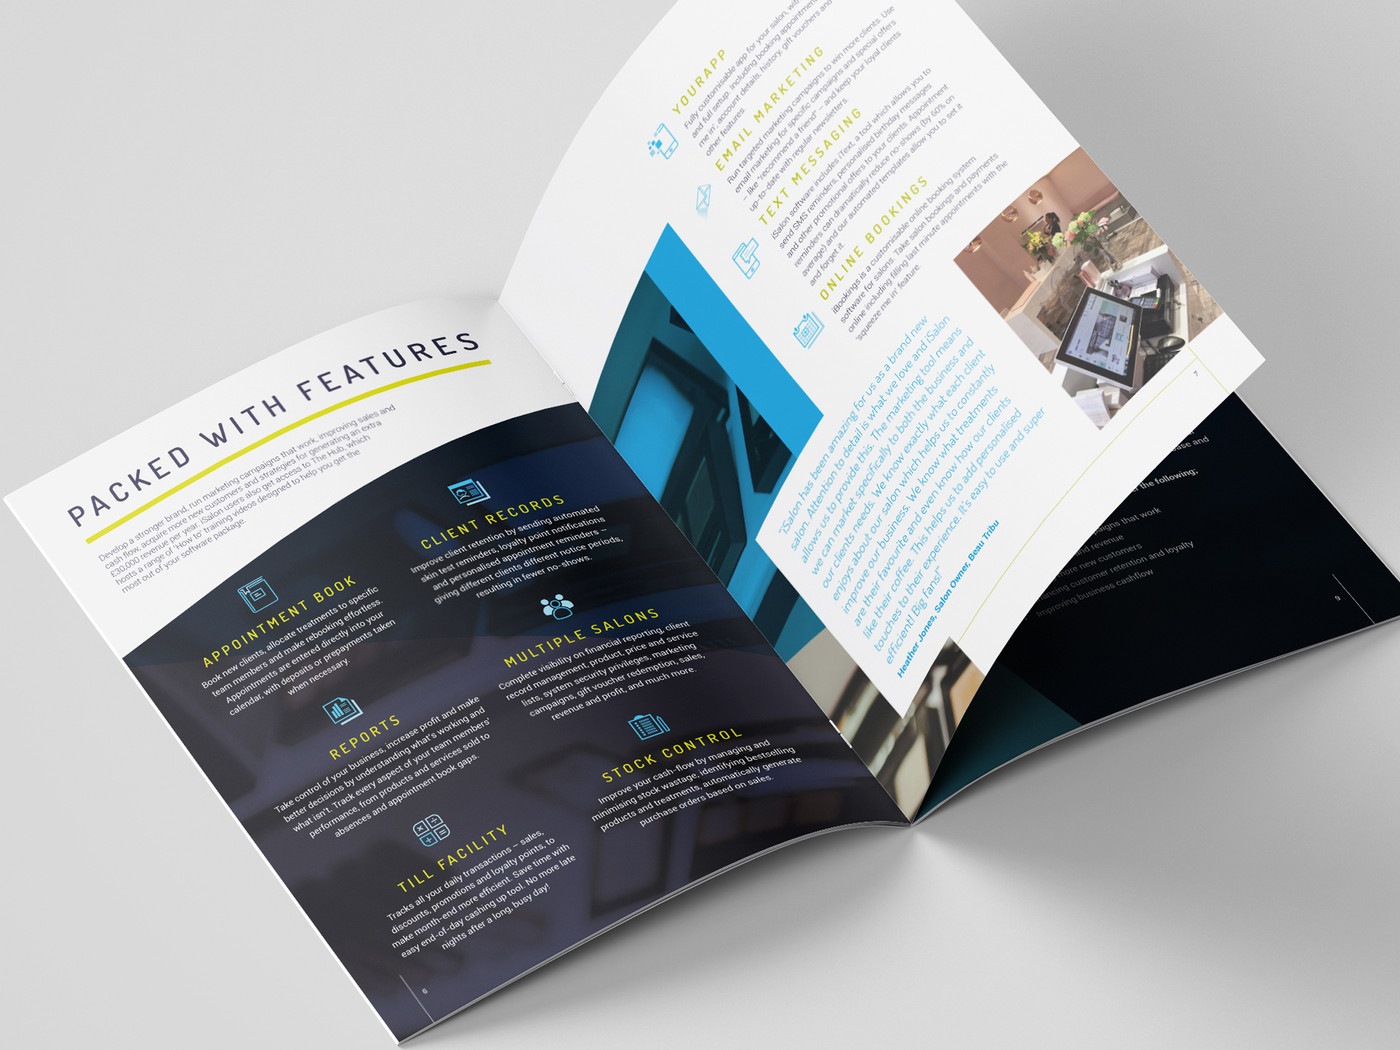 Effective printed materials for all businessesW...